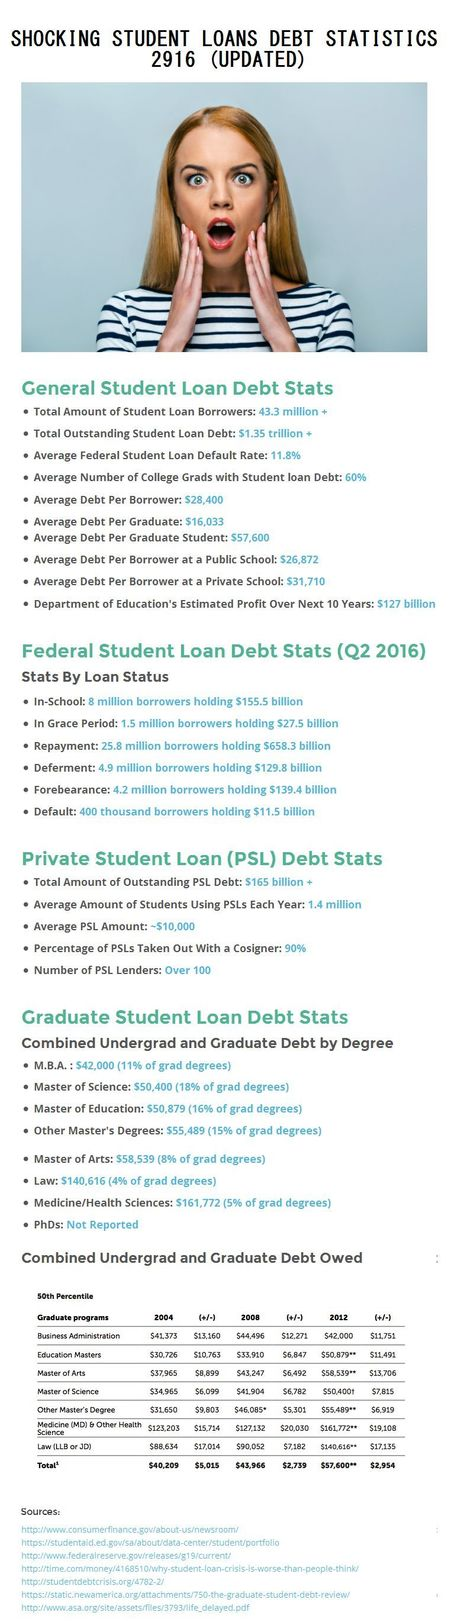 Shocking Student Loan Debt Statistics 2016 (UPDATED) | Health & Digital Tech Magazine - 2017 | Scoop.it